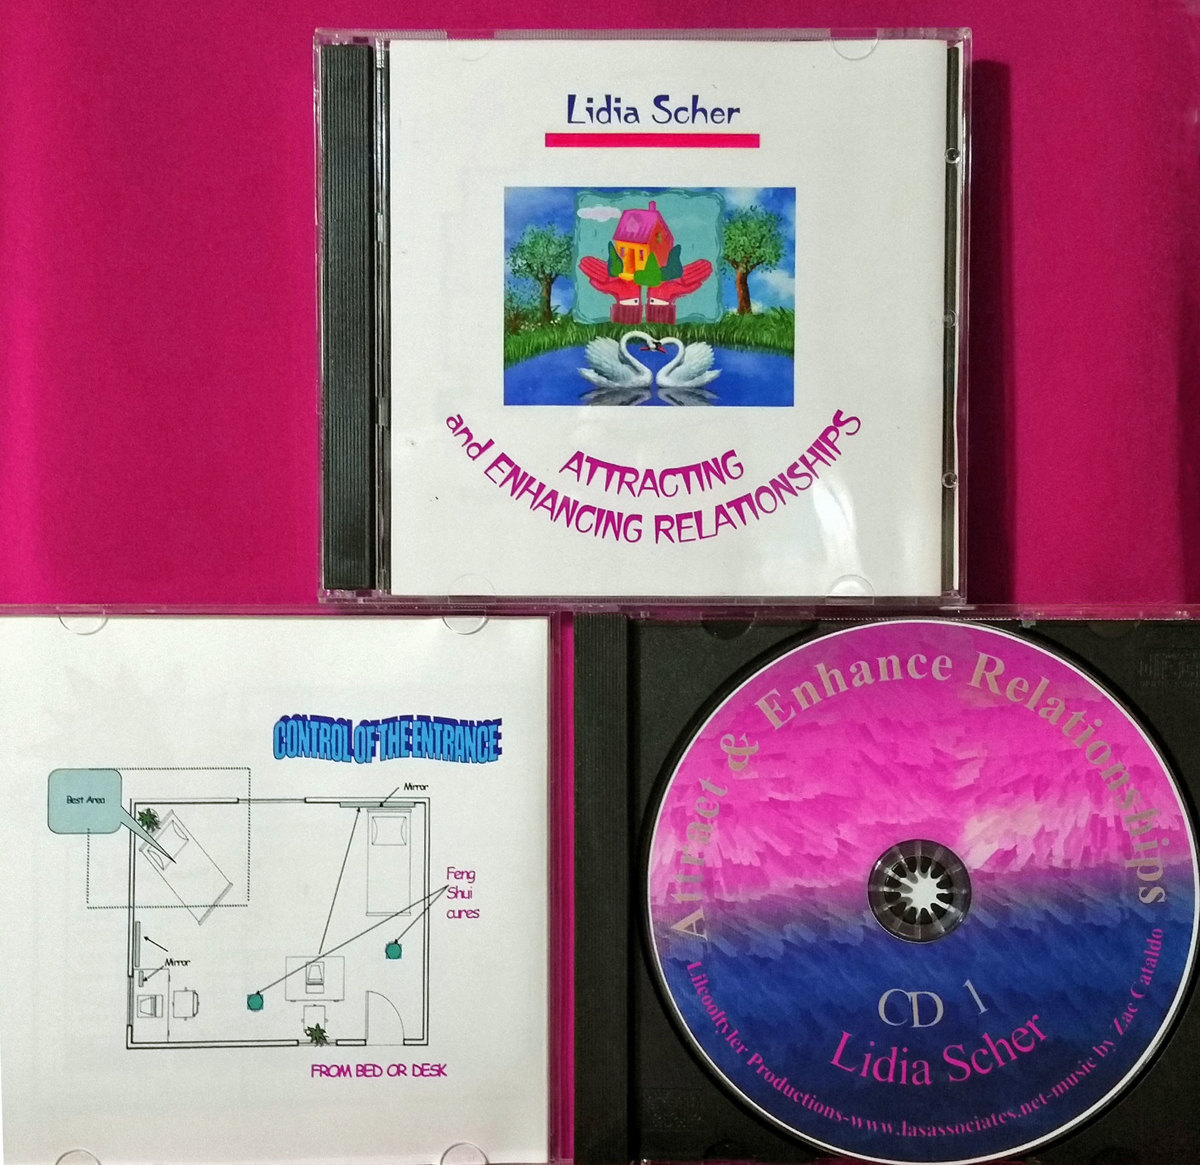 Attract & Enhance Relationships CD Set & Booklet (large view)